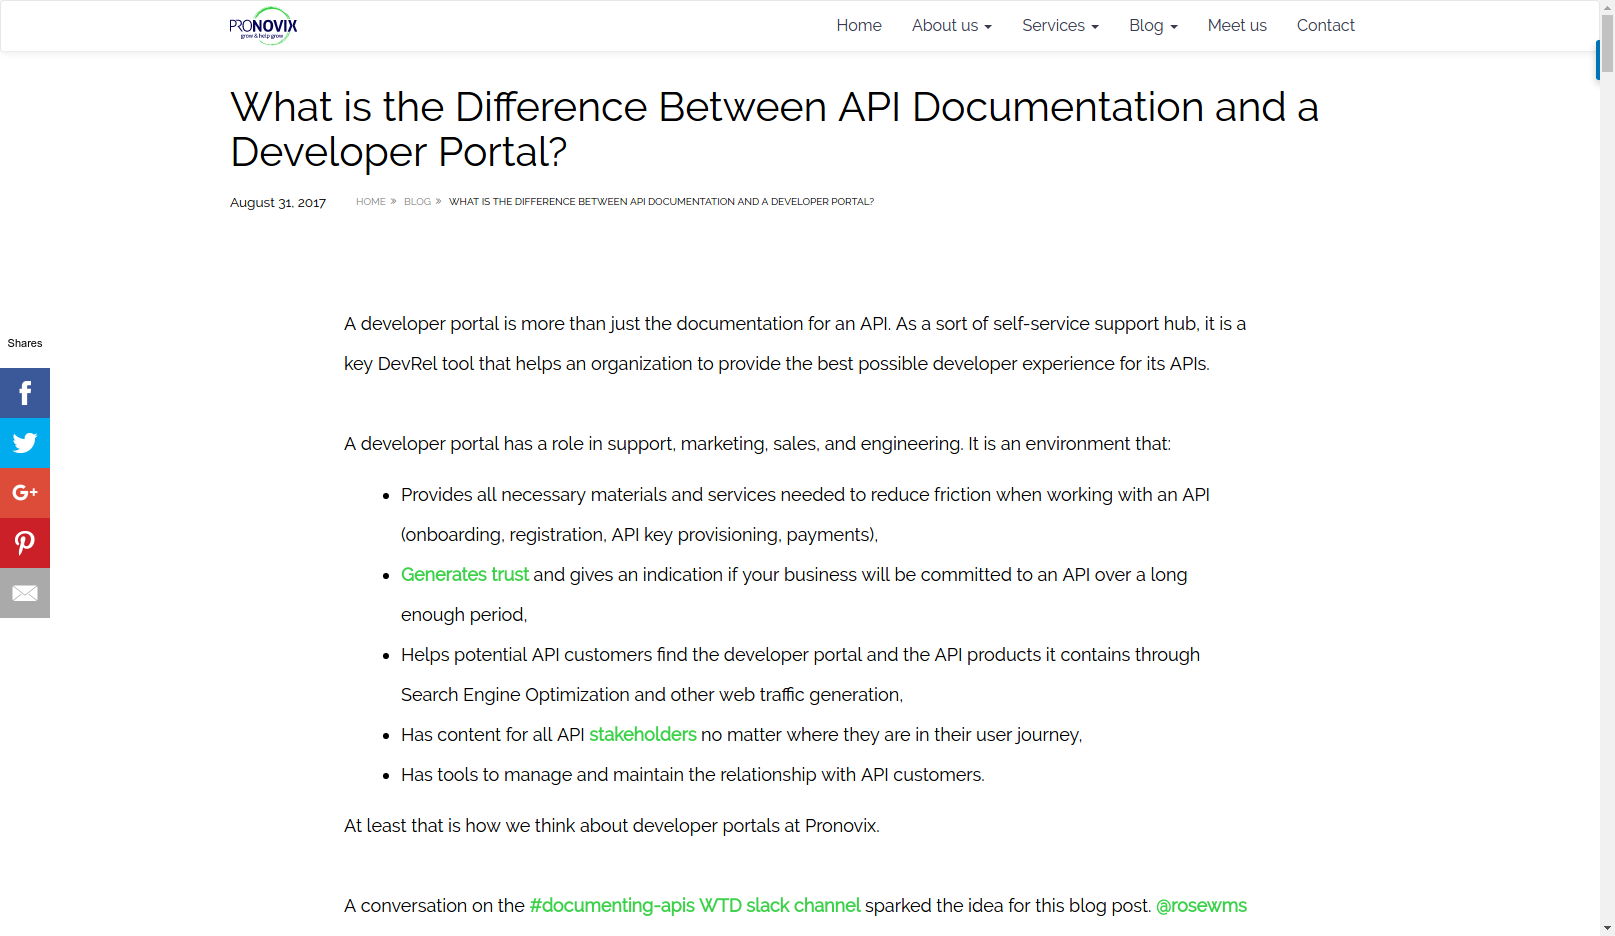 What is the Difference Between API Documentation and a Developer Portal?